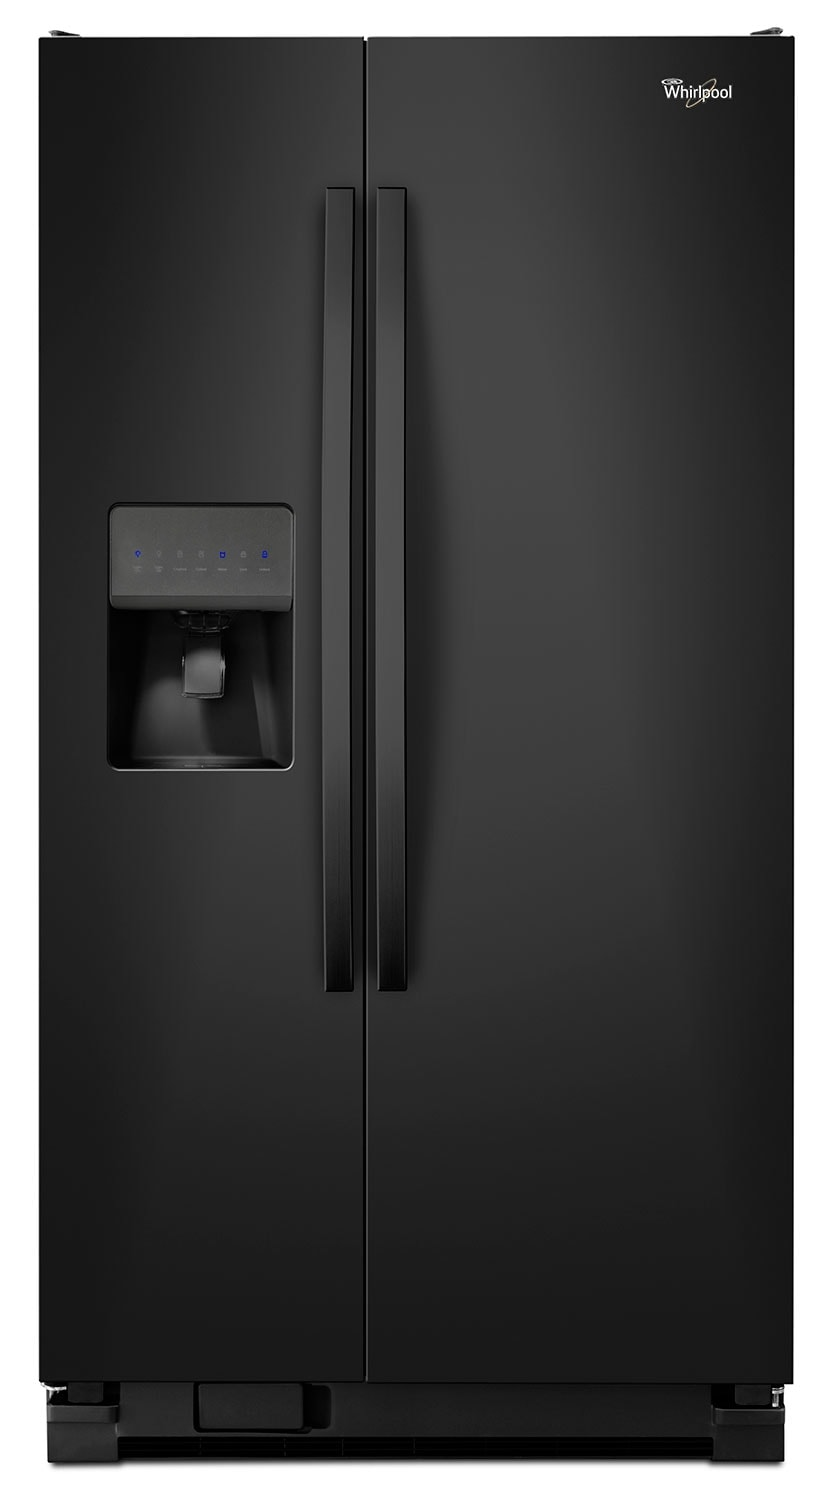 Refrigerators and Freezers - Whirlpool Black Side-by-Side Refrigerator (24.5 Cu. Ft.) - WRS325FDAB